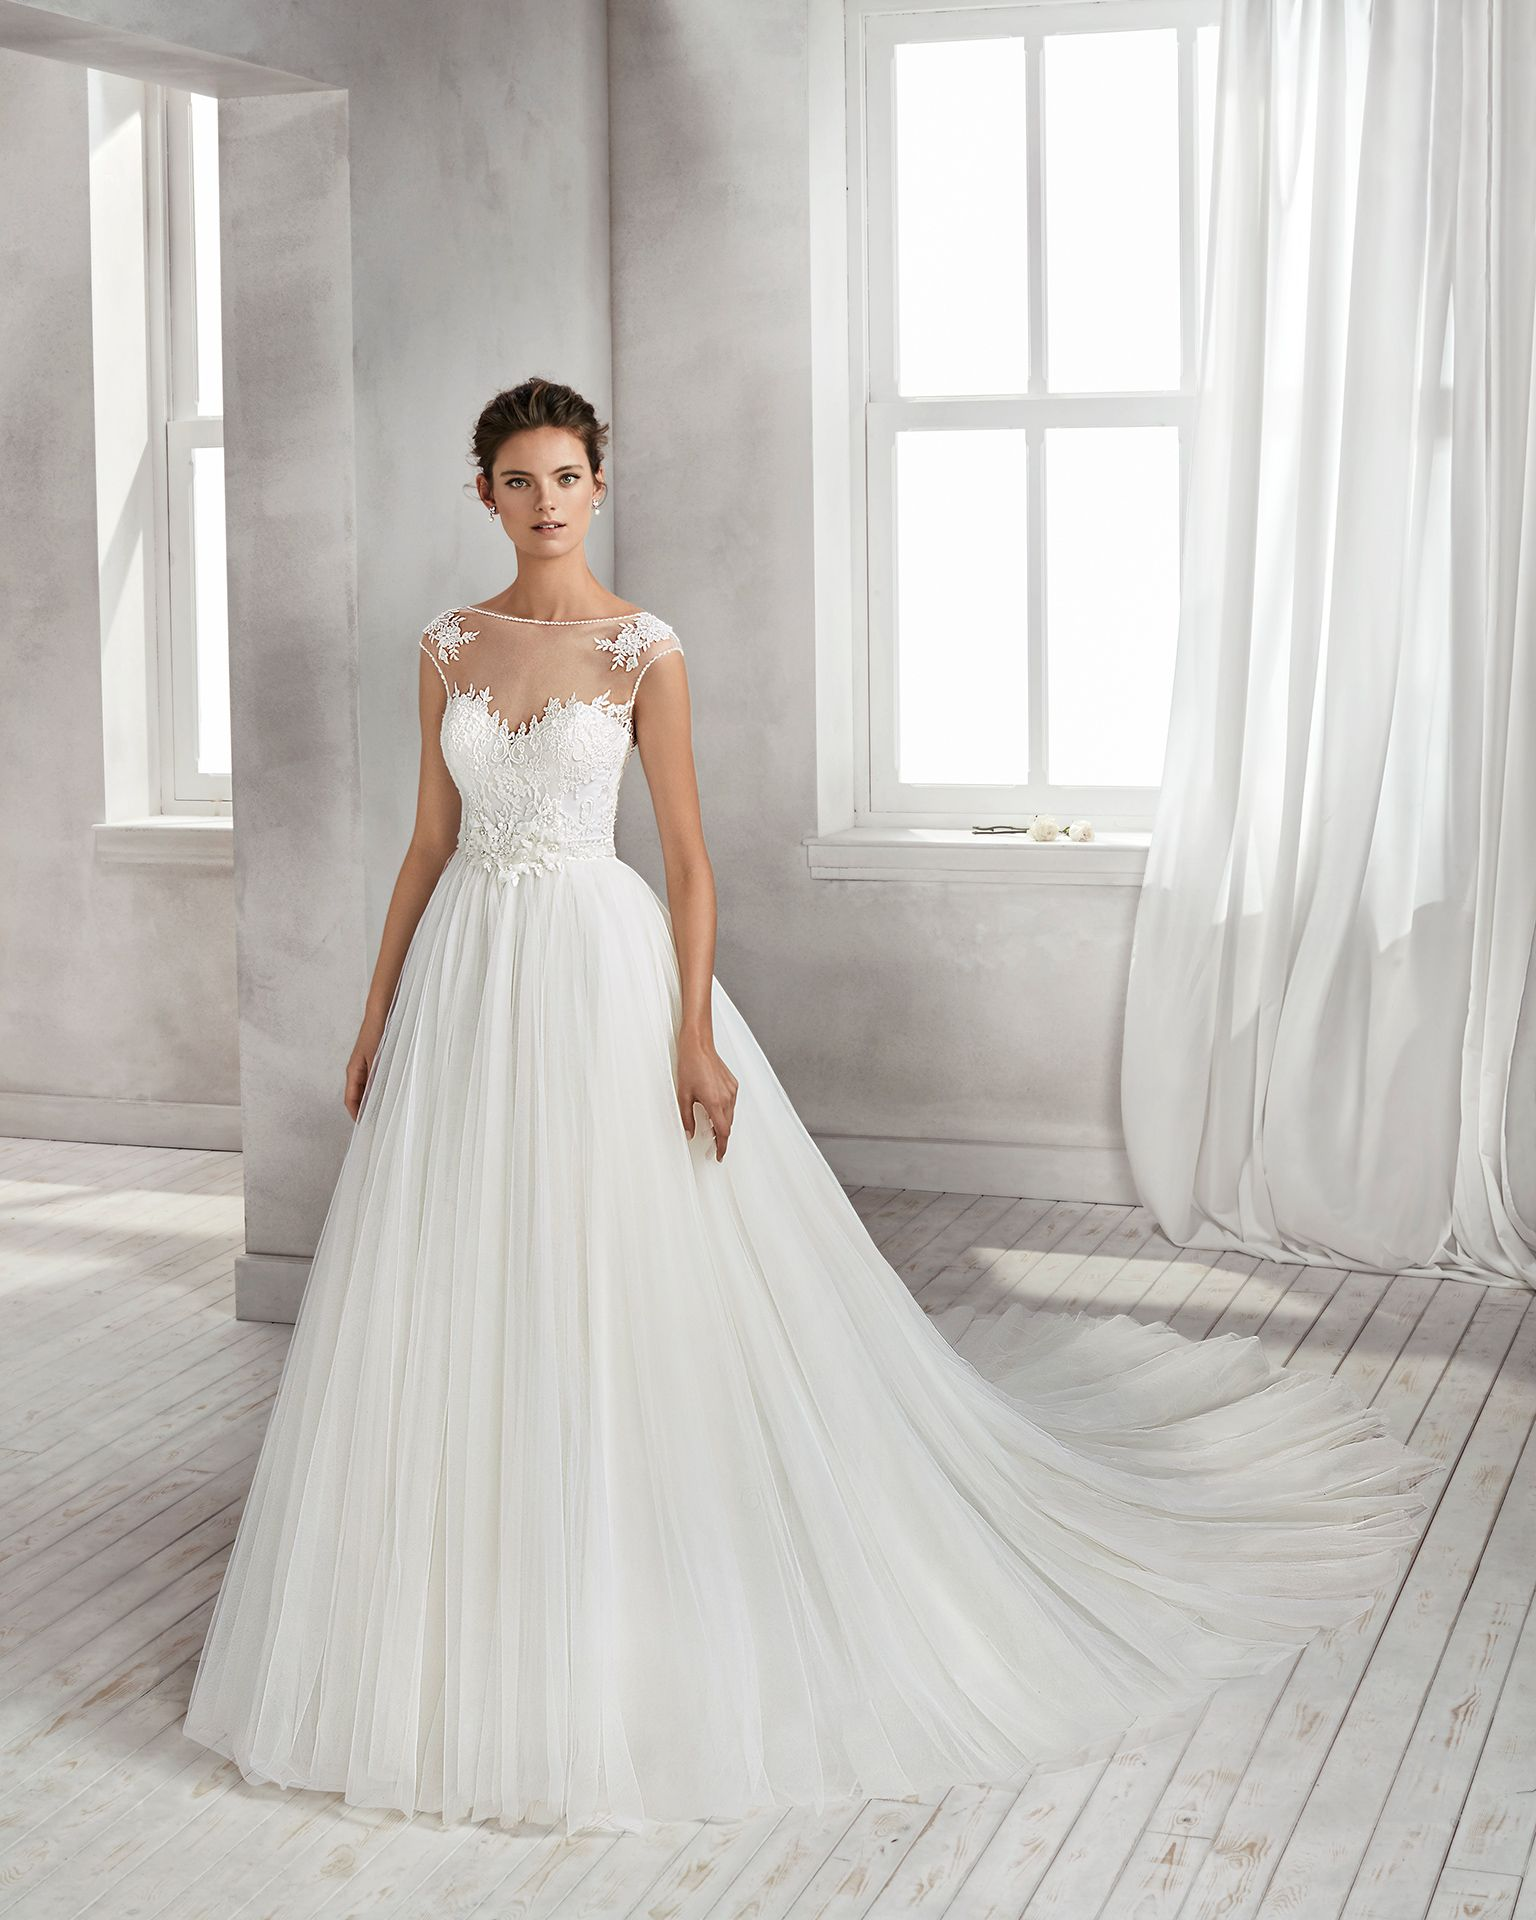 348534b138 Princess-style beaded lace and tulle wedding dress with sweetheart neckline,  low back and full tulle skirt. 2018 Luna Novia Collection.